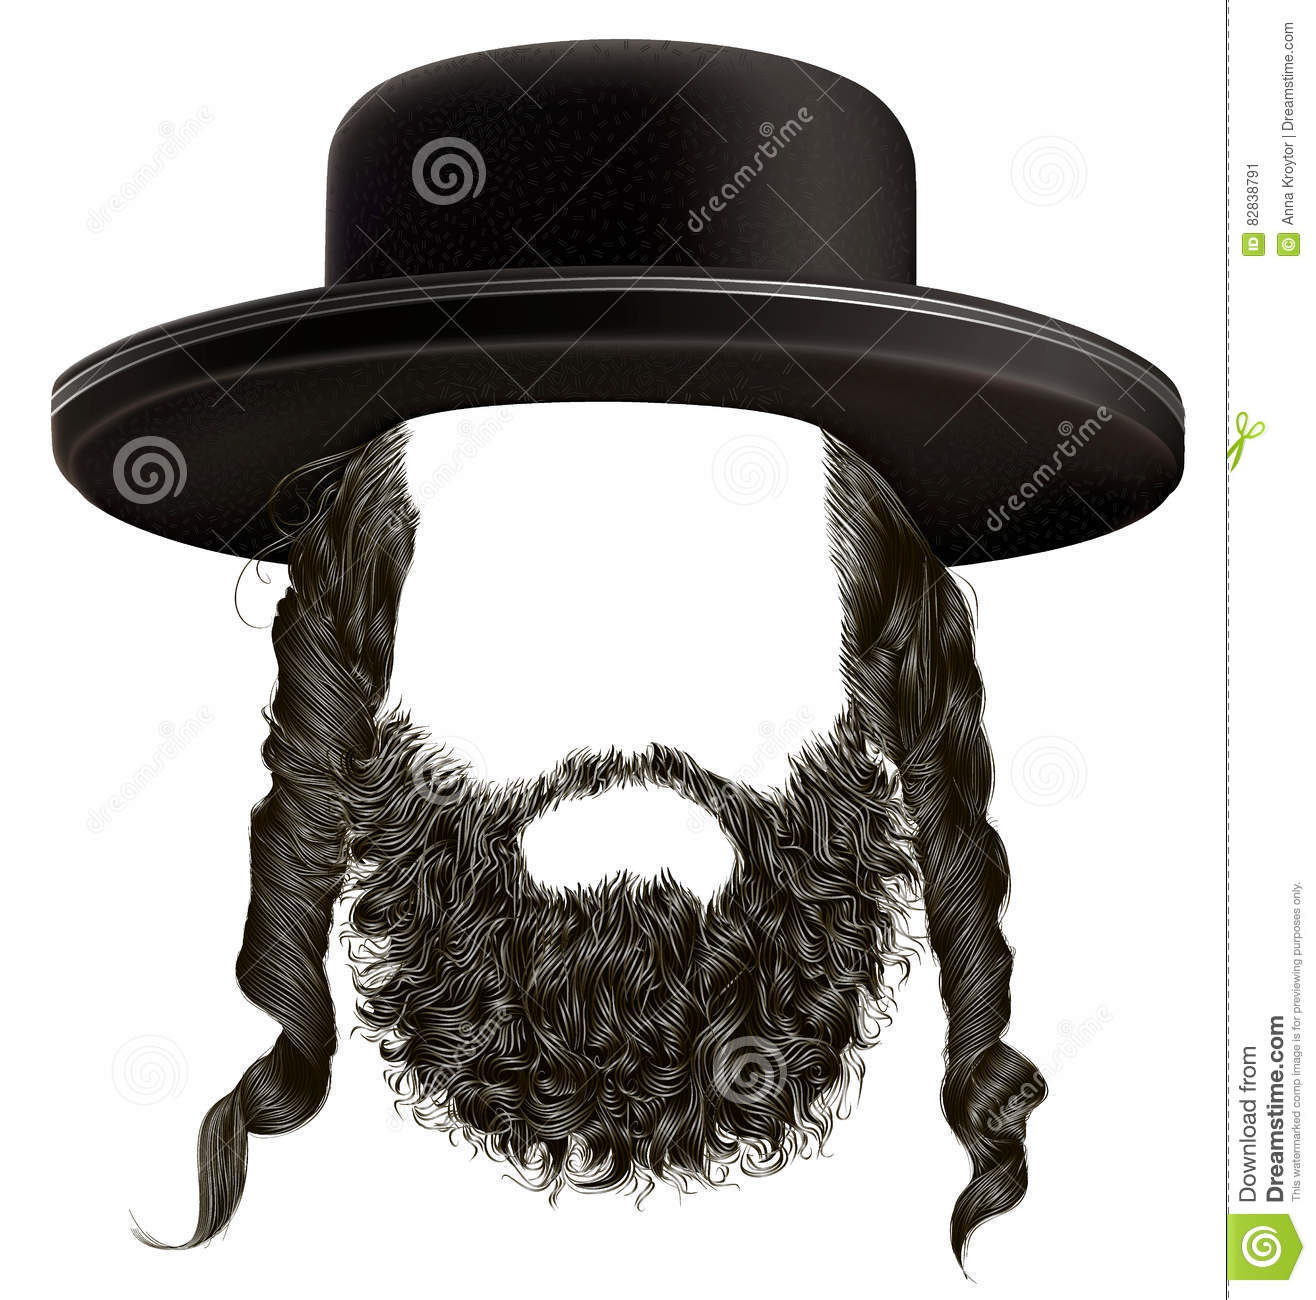 Hasidic Hats: Black Hair Sidelocks With Beard Mask Wig Hassid In Hat